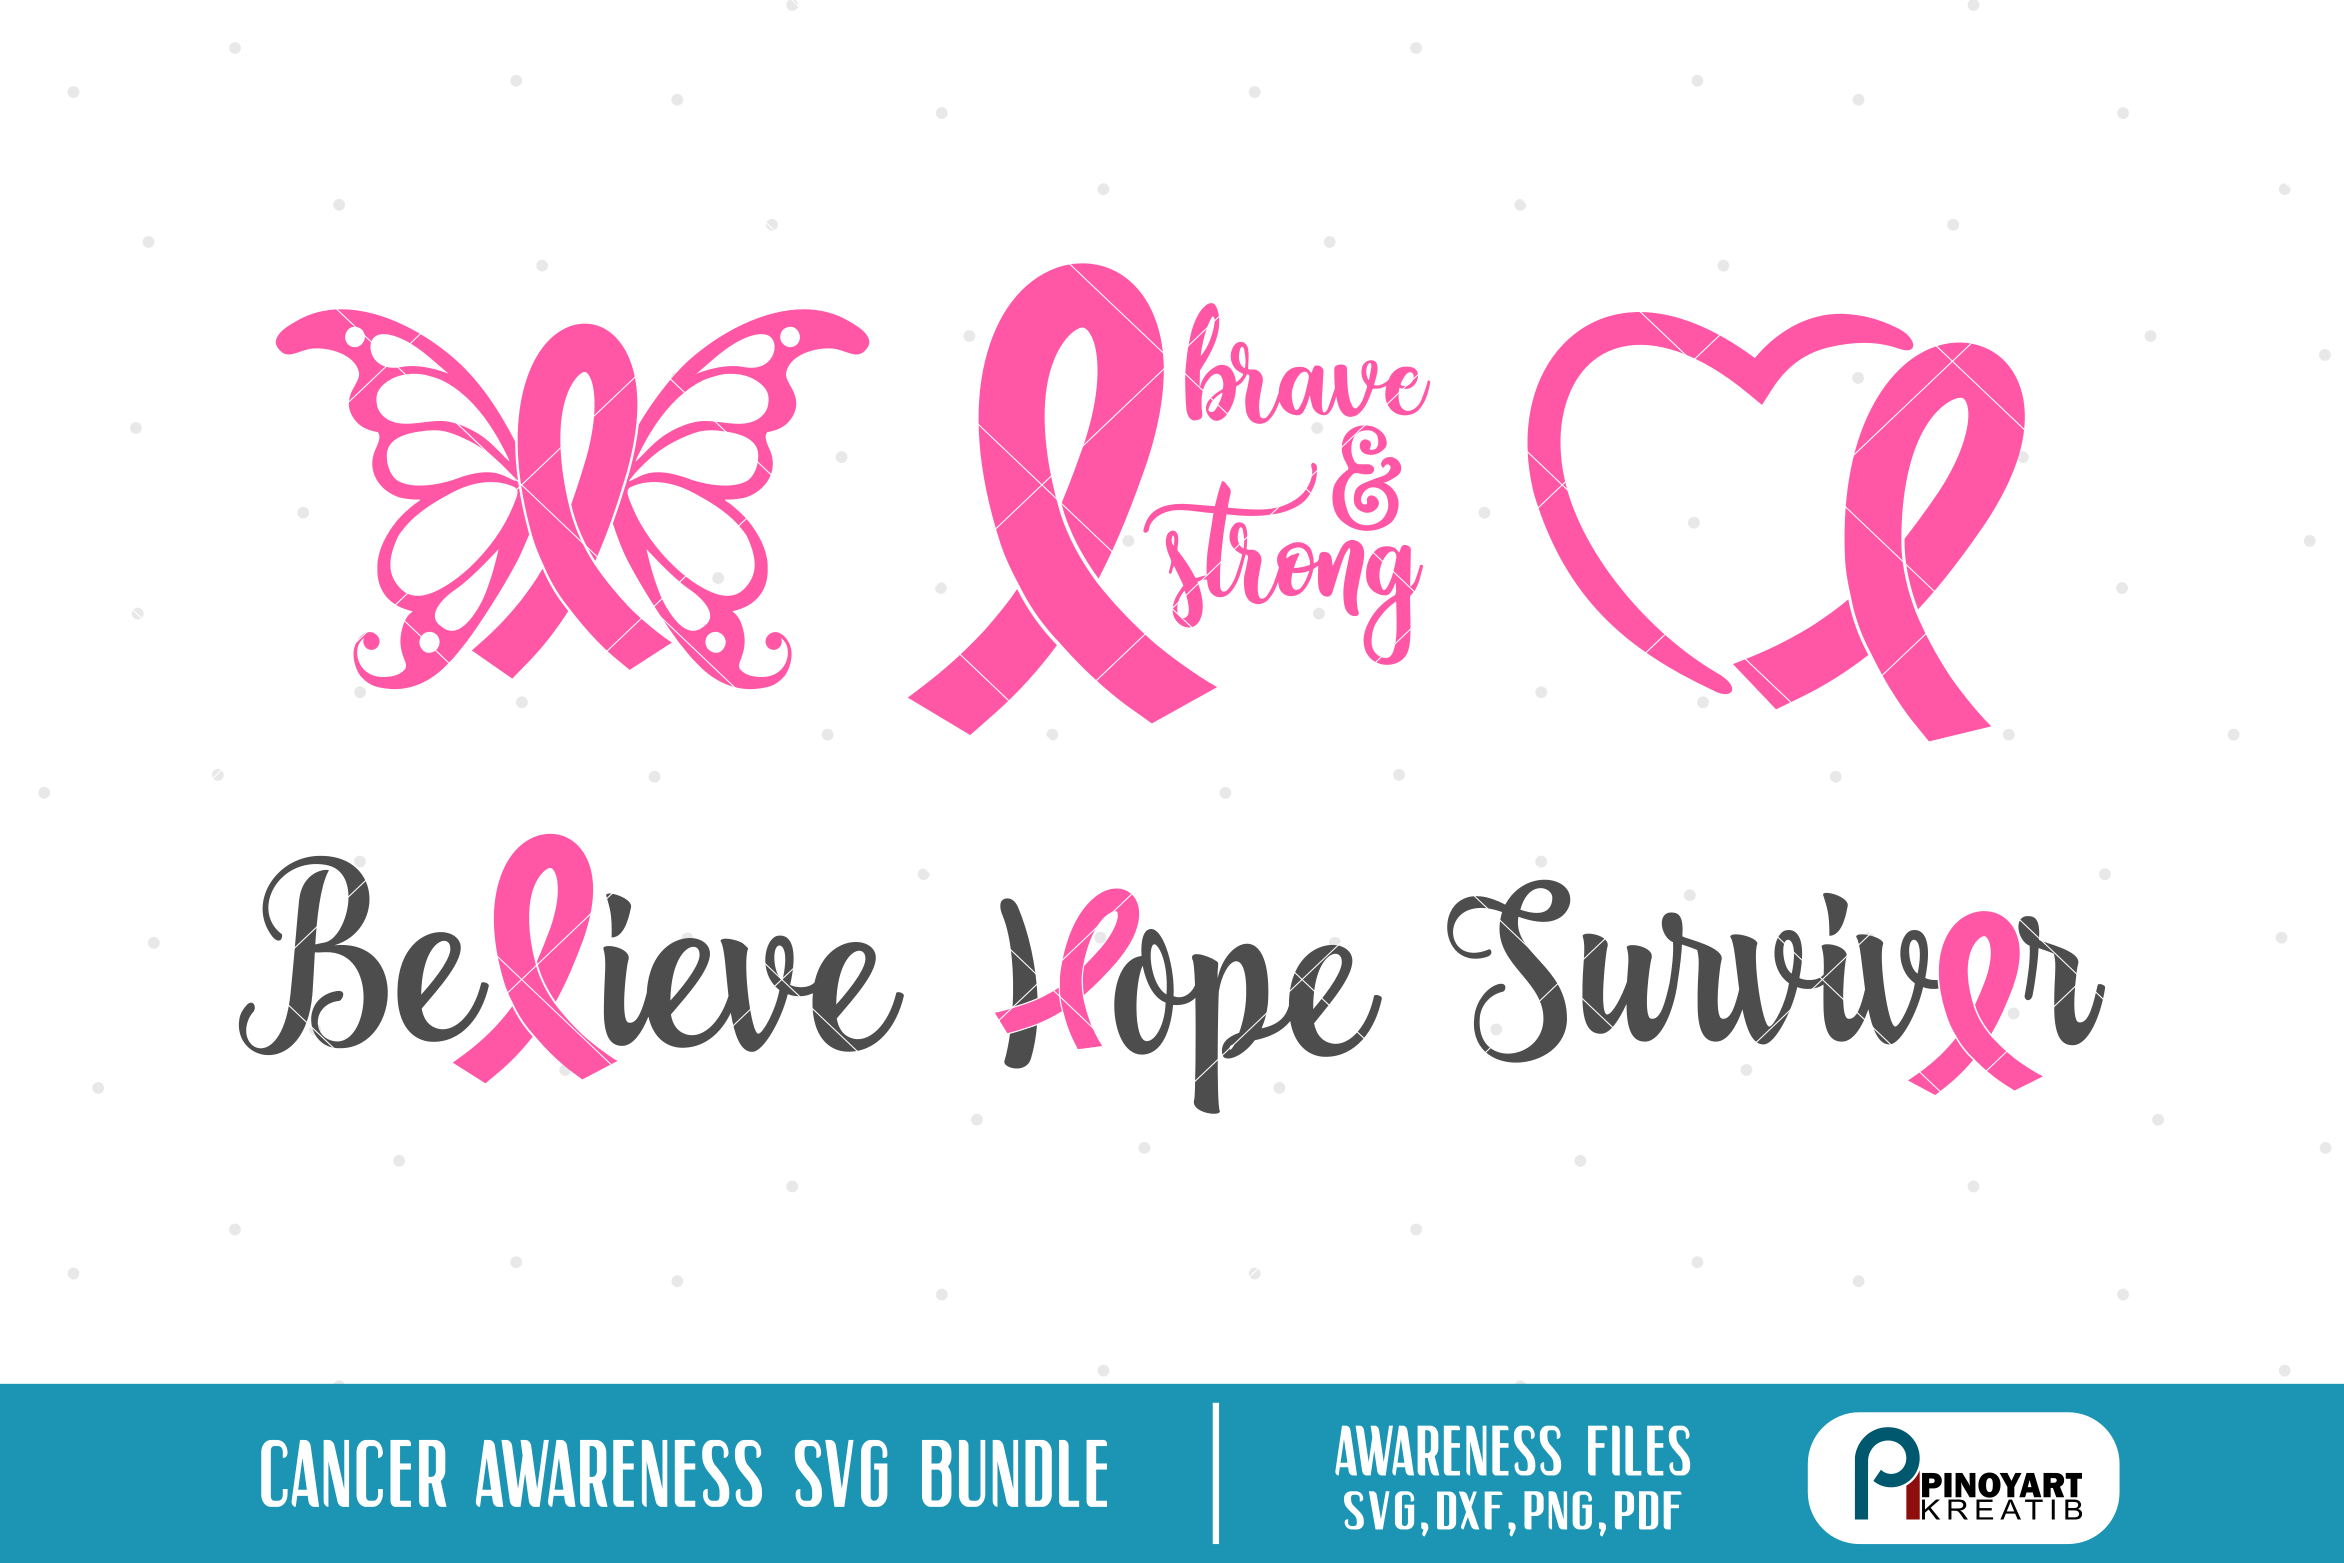 Download Free Cancer Awareness Bundle Graphic By Pinoyartkreatib Creative for Cricut Explore, Silhouette and other cutting machines.